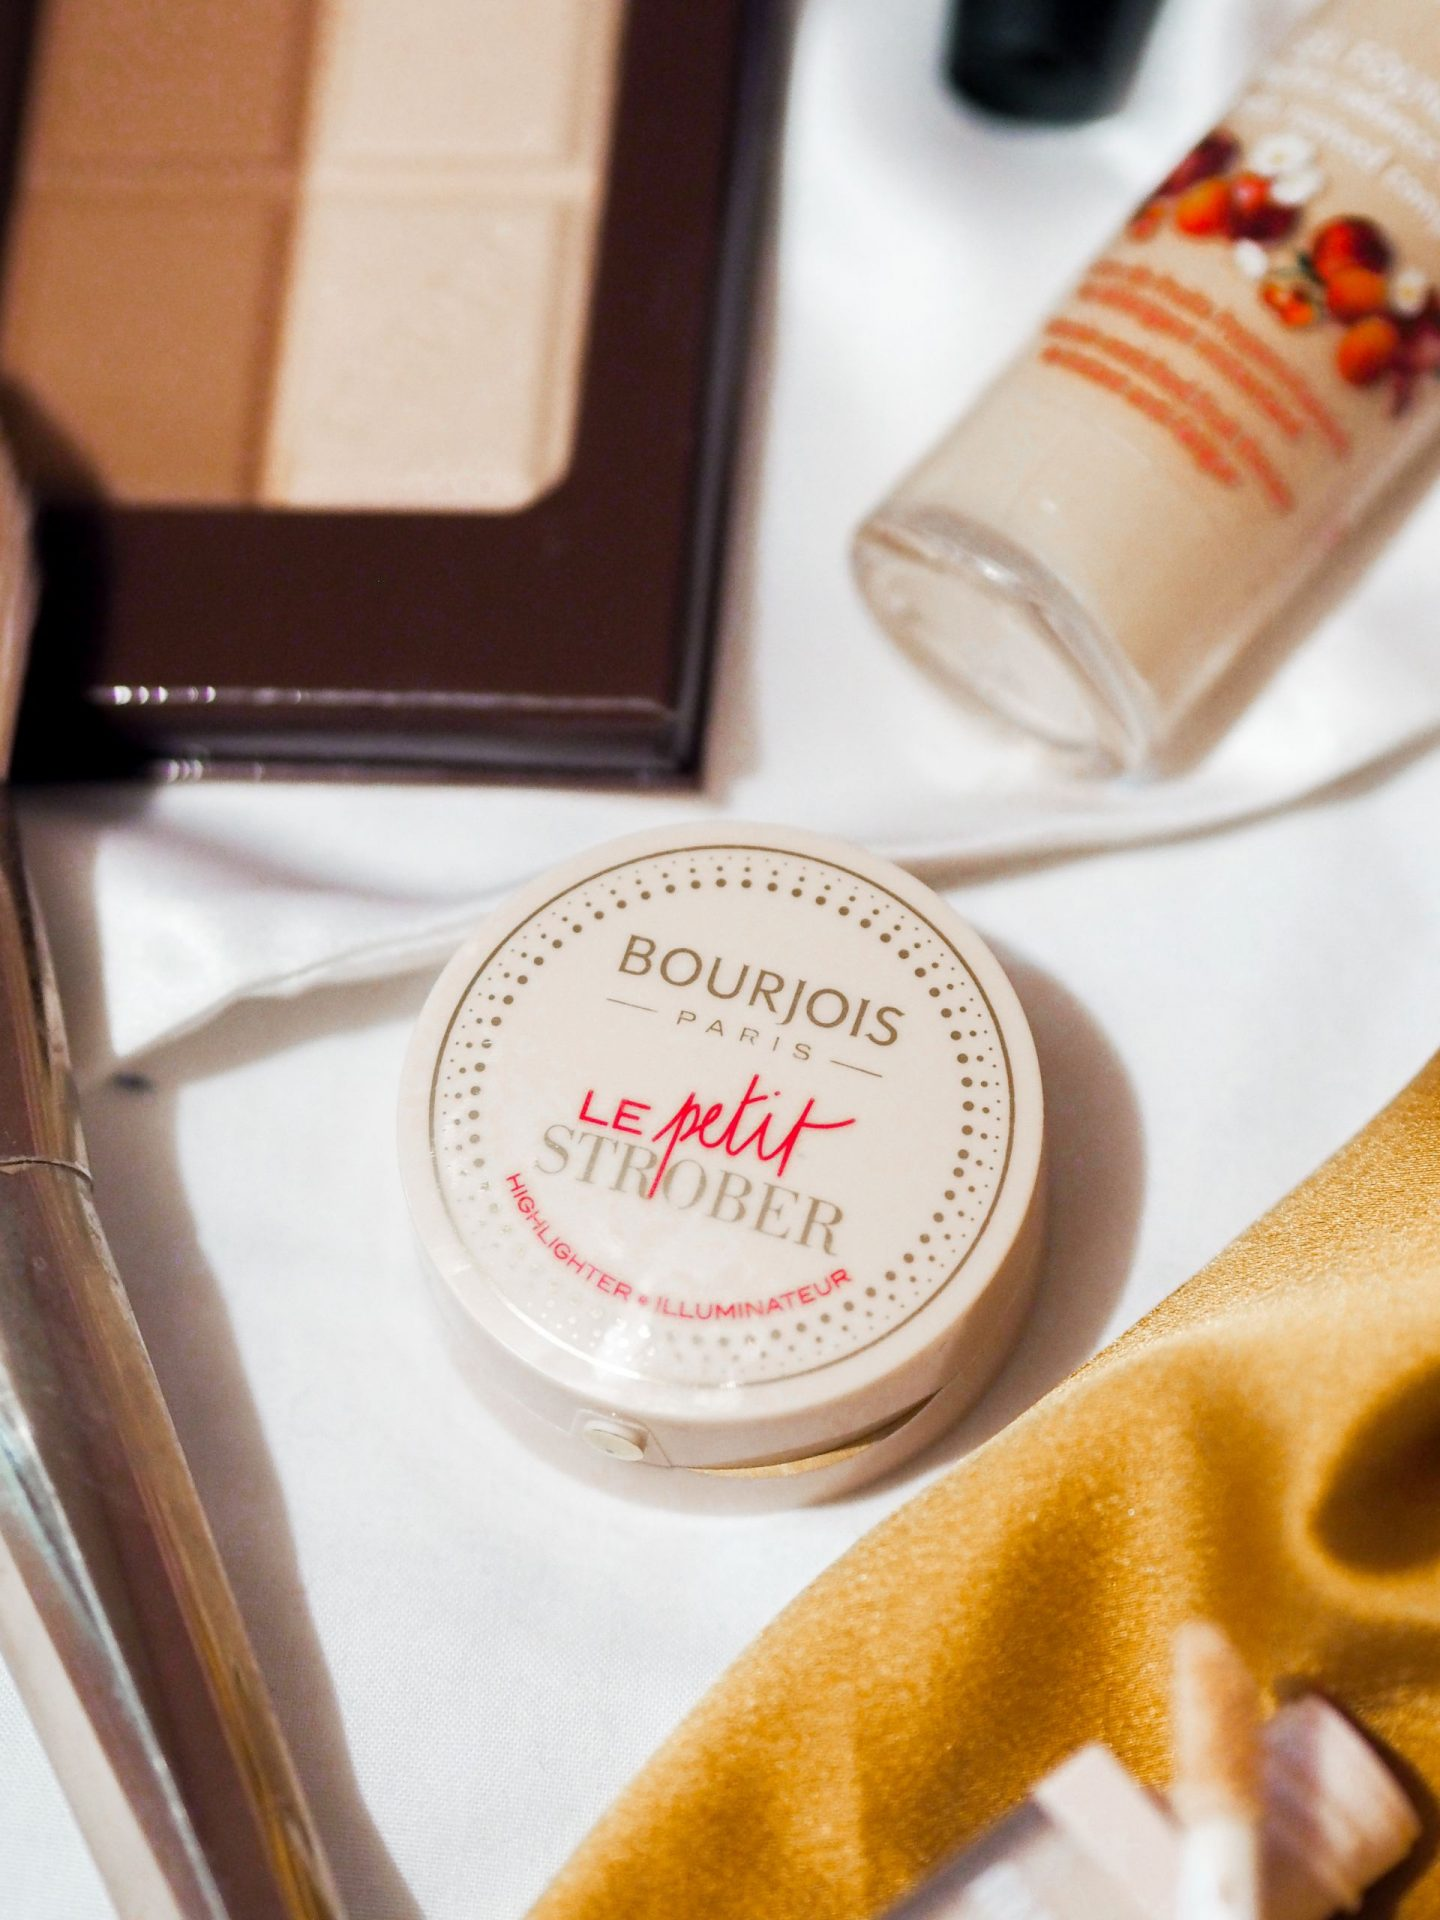 Is Bourjois Leaving The UK? Six Makeup Products You Need To Try Before It Does